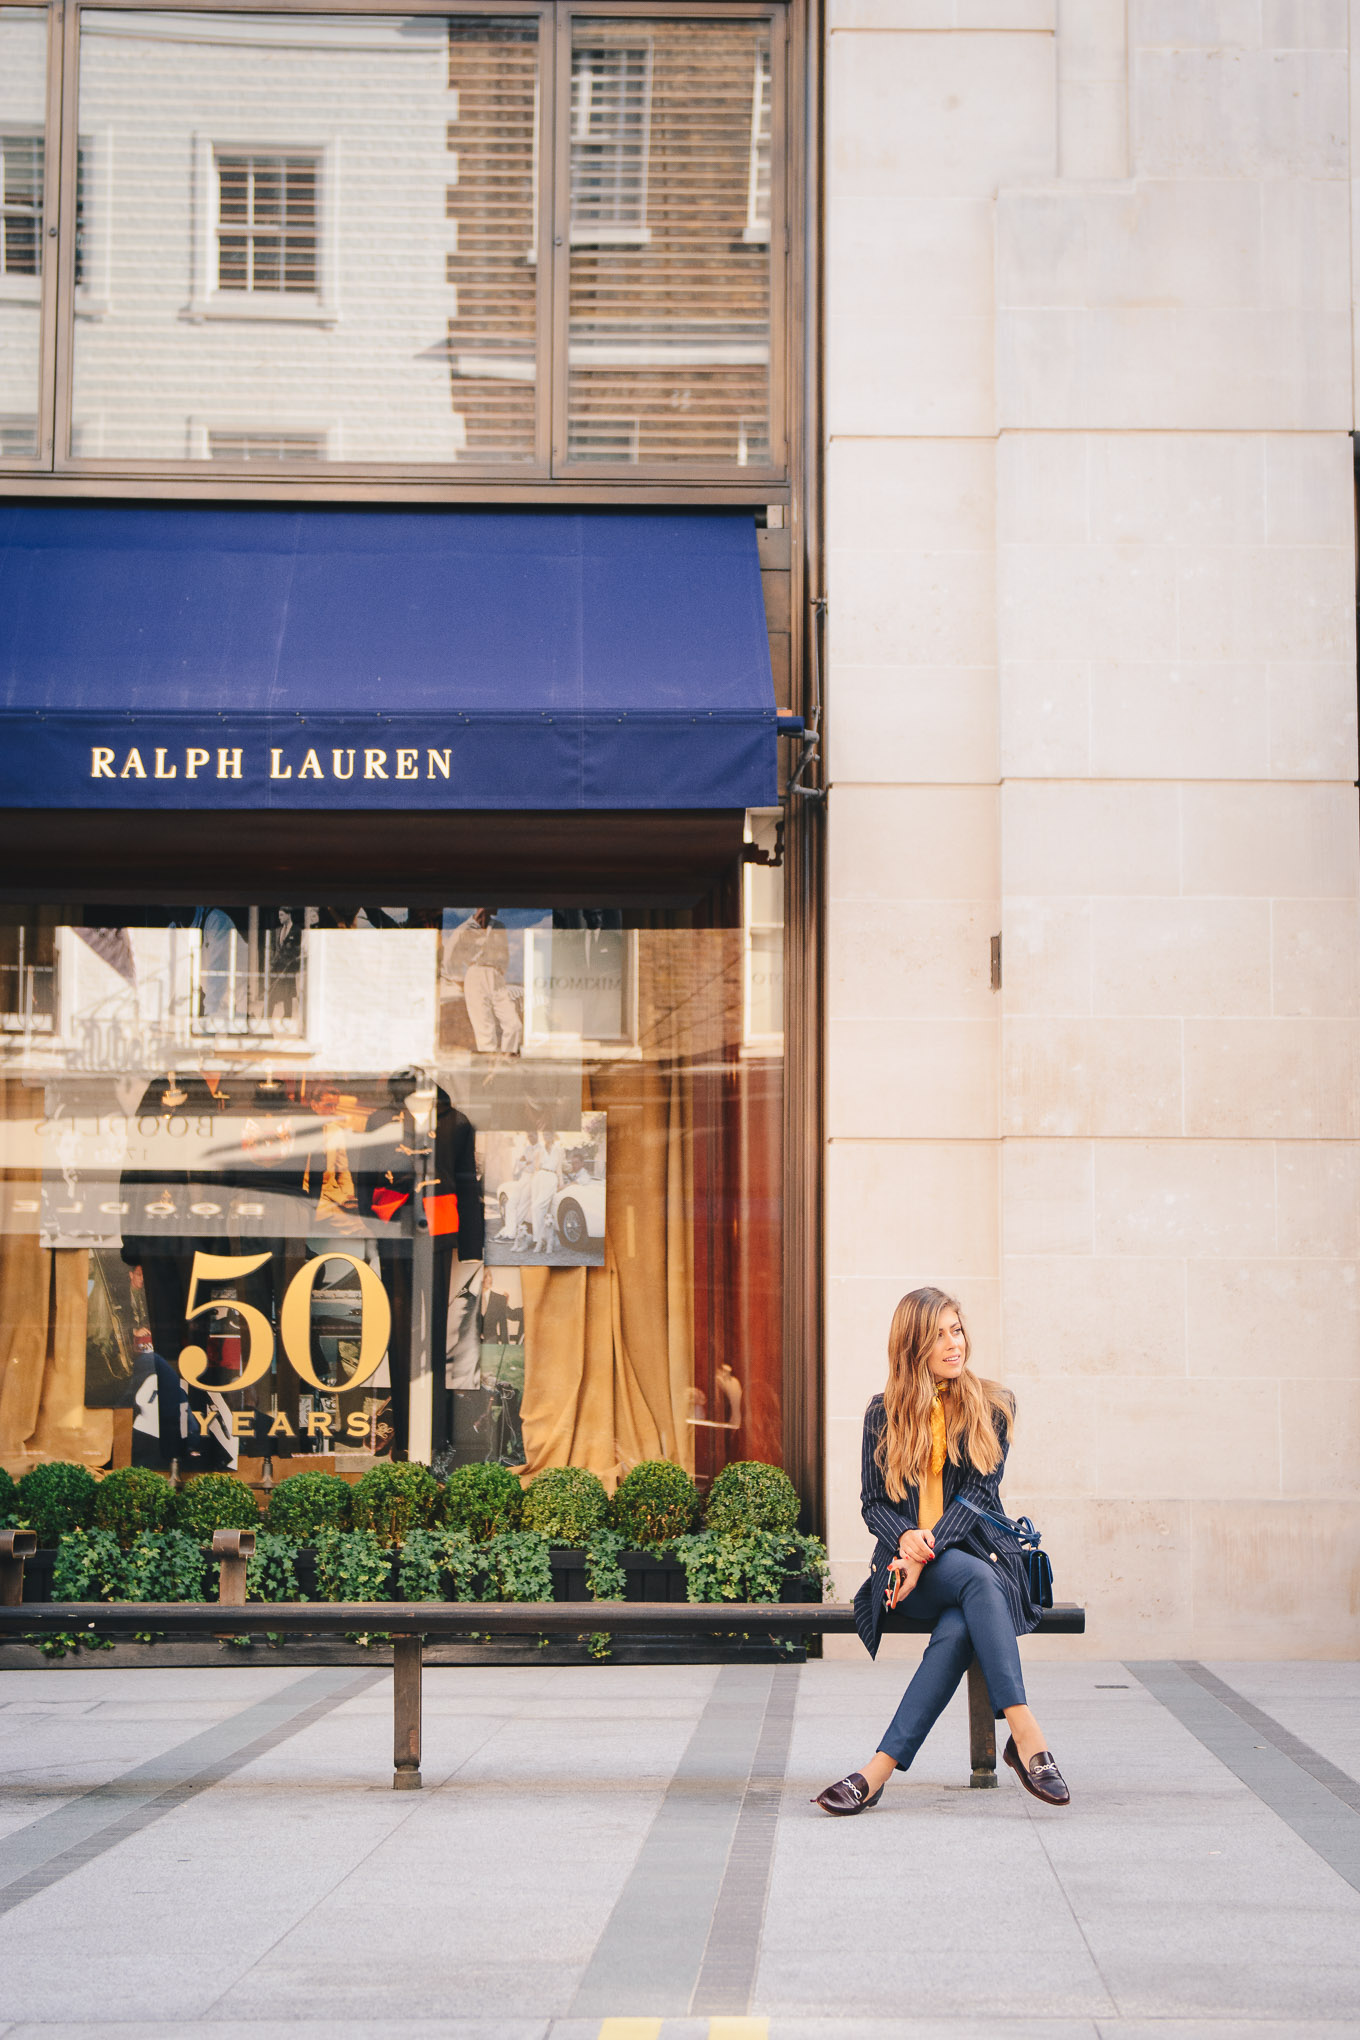 Raulph Lauren New Bond Street